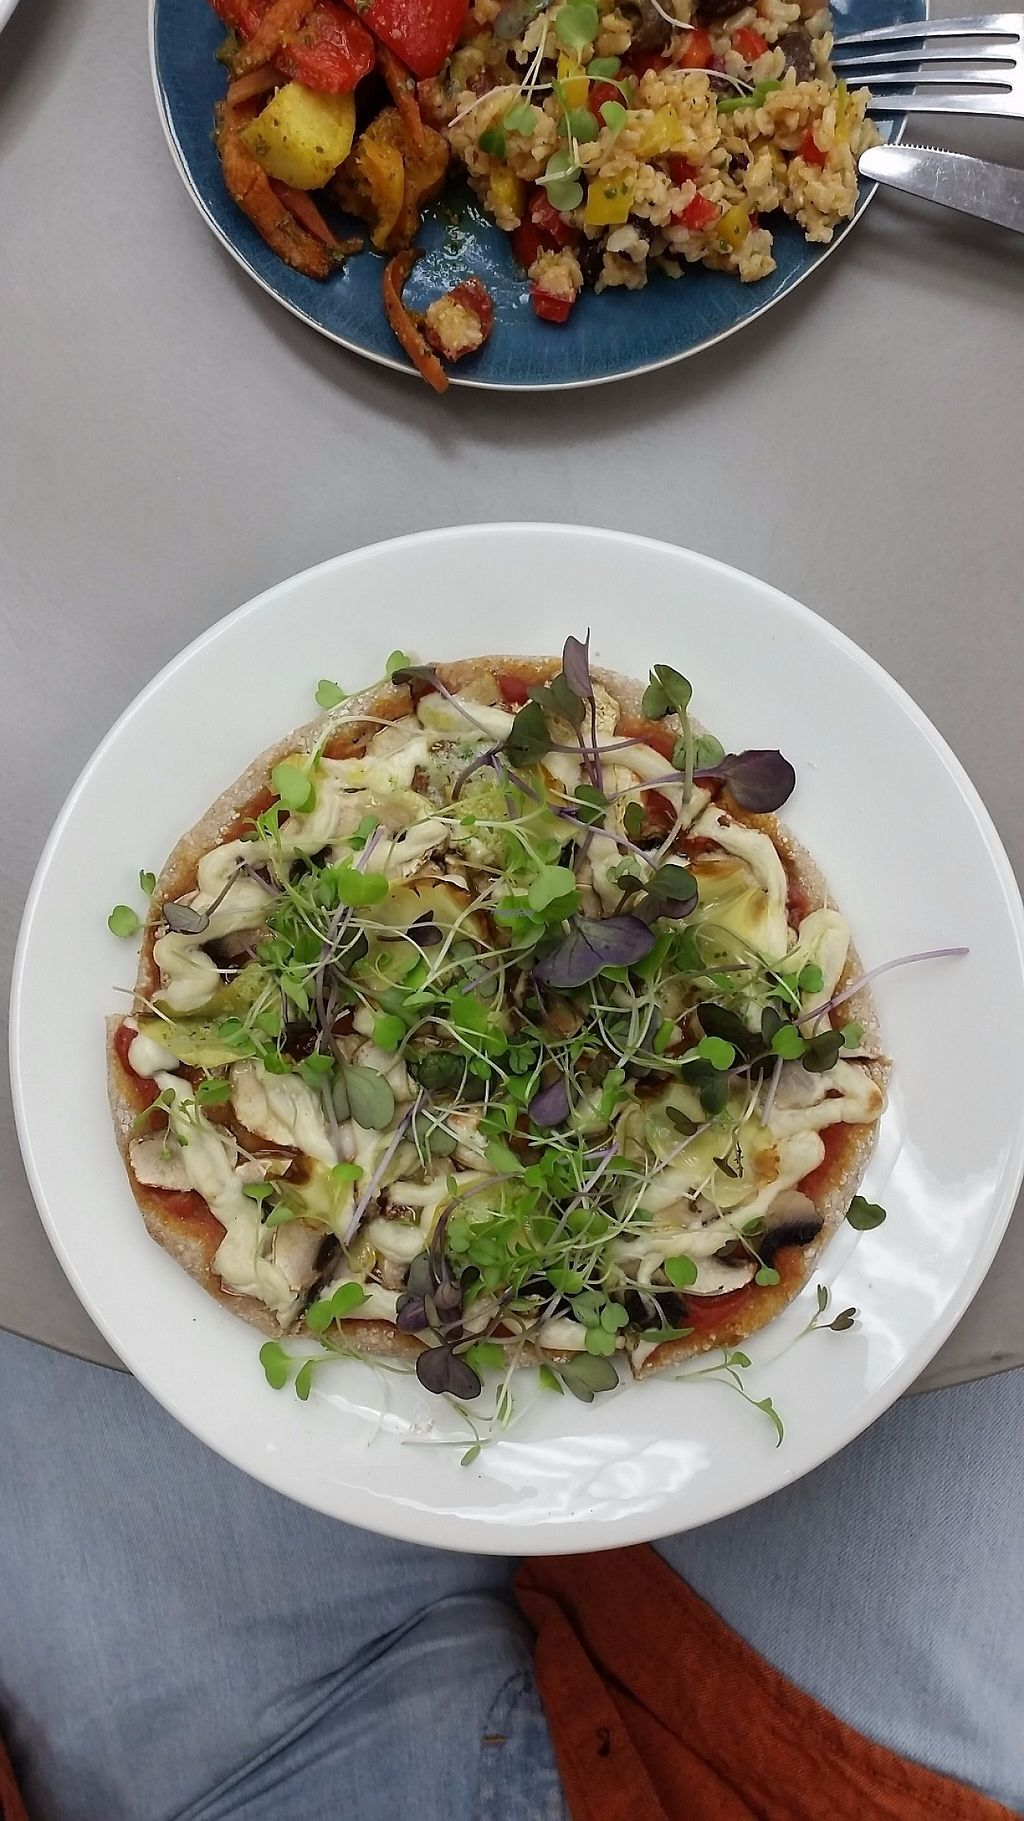 """Photo of Wholegrain Organics  by <a href=""""/members/profile/AndyTheVWDude"""">AndyTheVWDude</a> <br/>Delicious Mushroom Pizza <br/> April 13, 2017  - <a href='/contact/abuse/image/90377/247716'>Report</a>"""